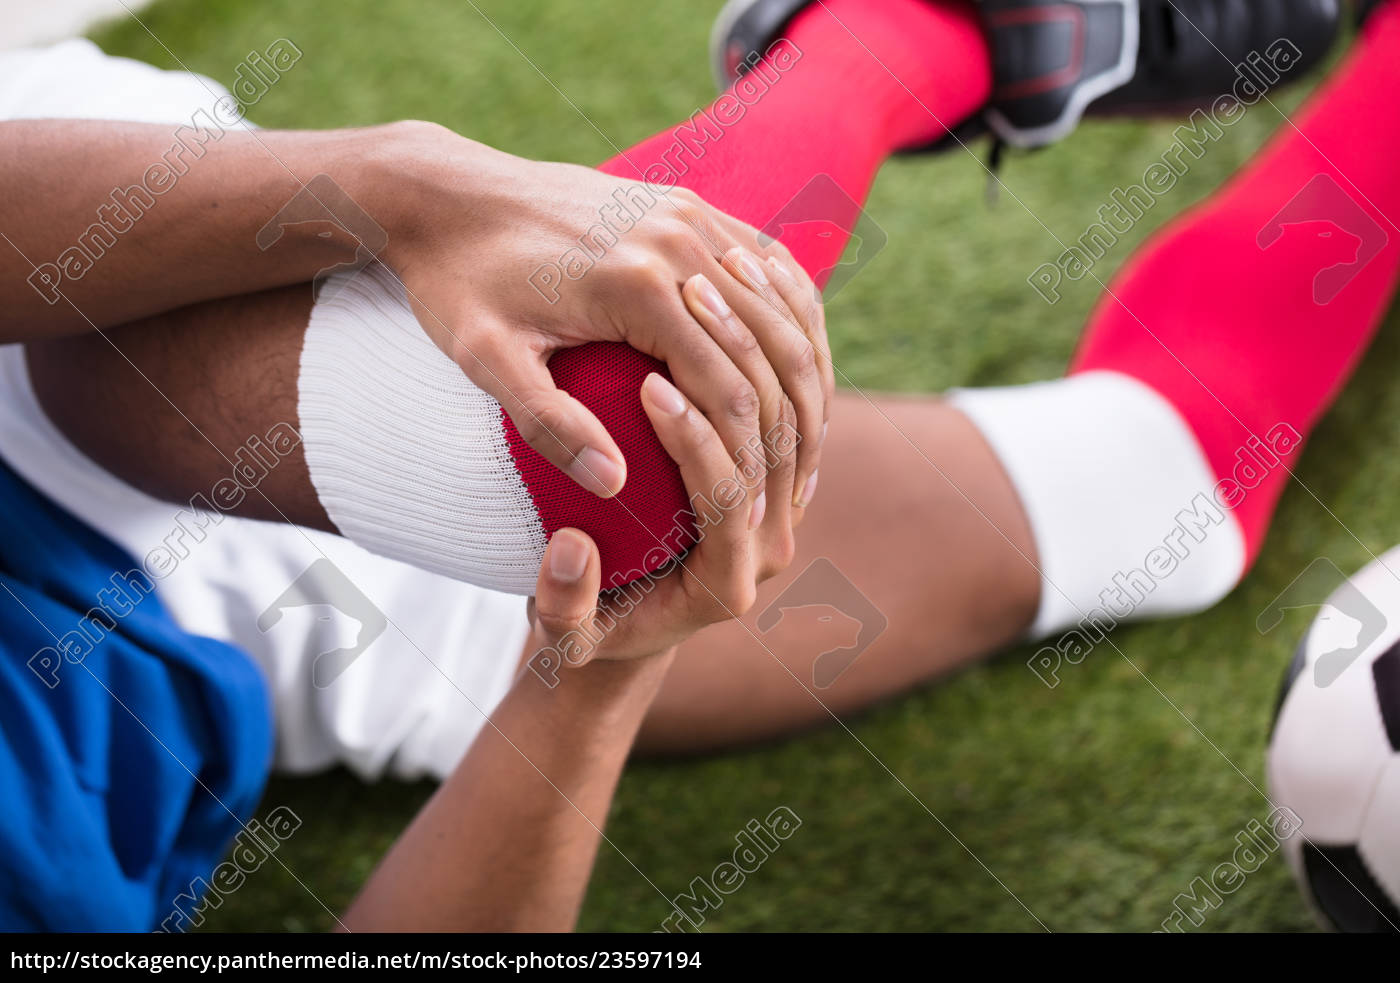 injured, soccer, player, on, field - 23597194